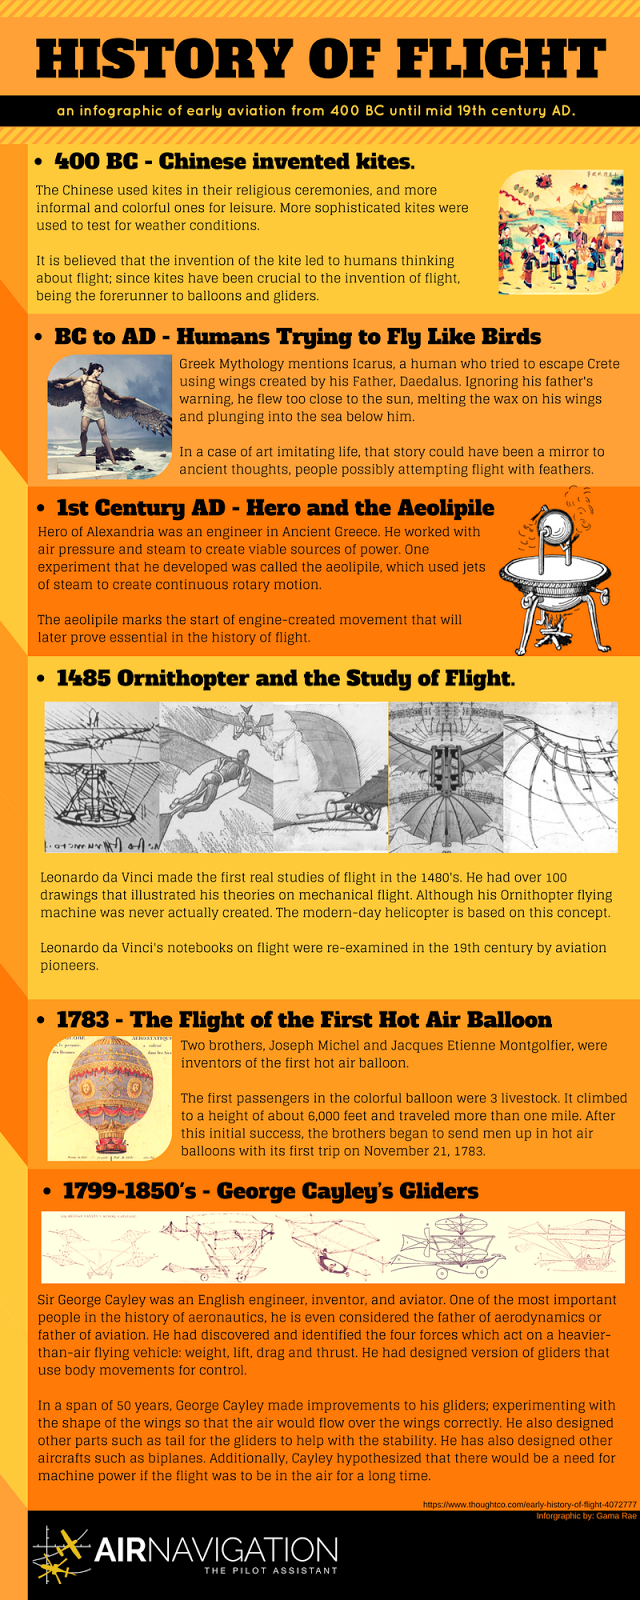 5+ Notable Milestones on the Earliest Flight Attempts from 400 BC